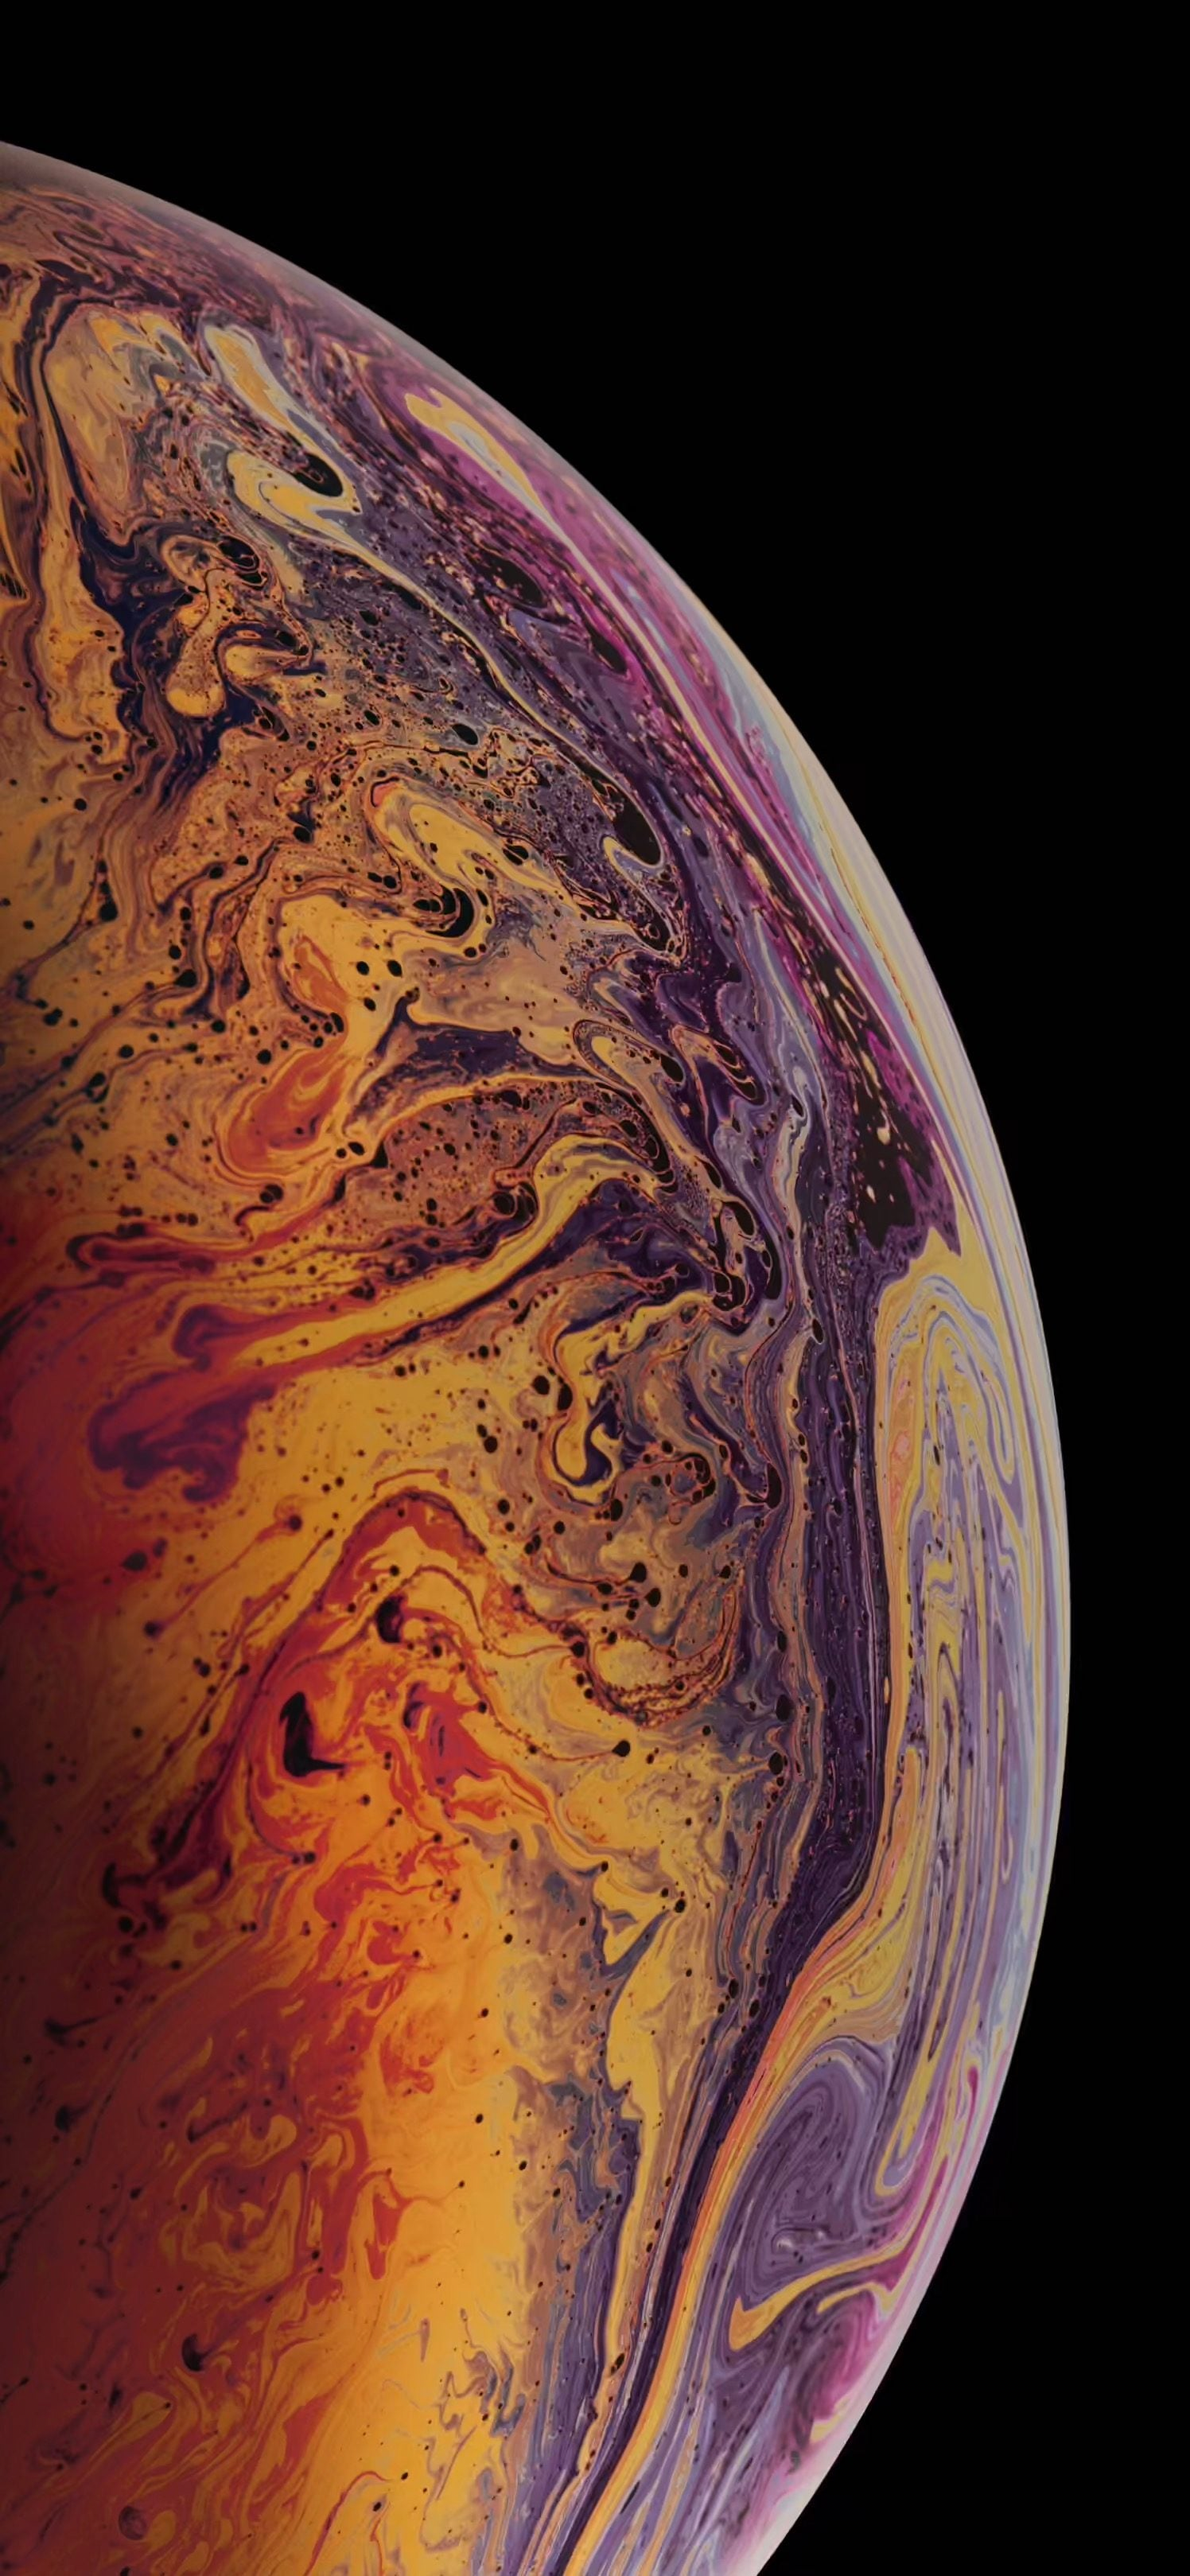 Iphone Xs Xs Max Sfondi Ufficiali Wallpaper Download